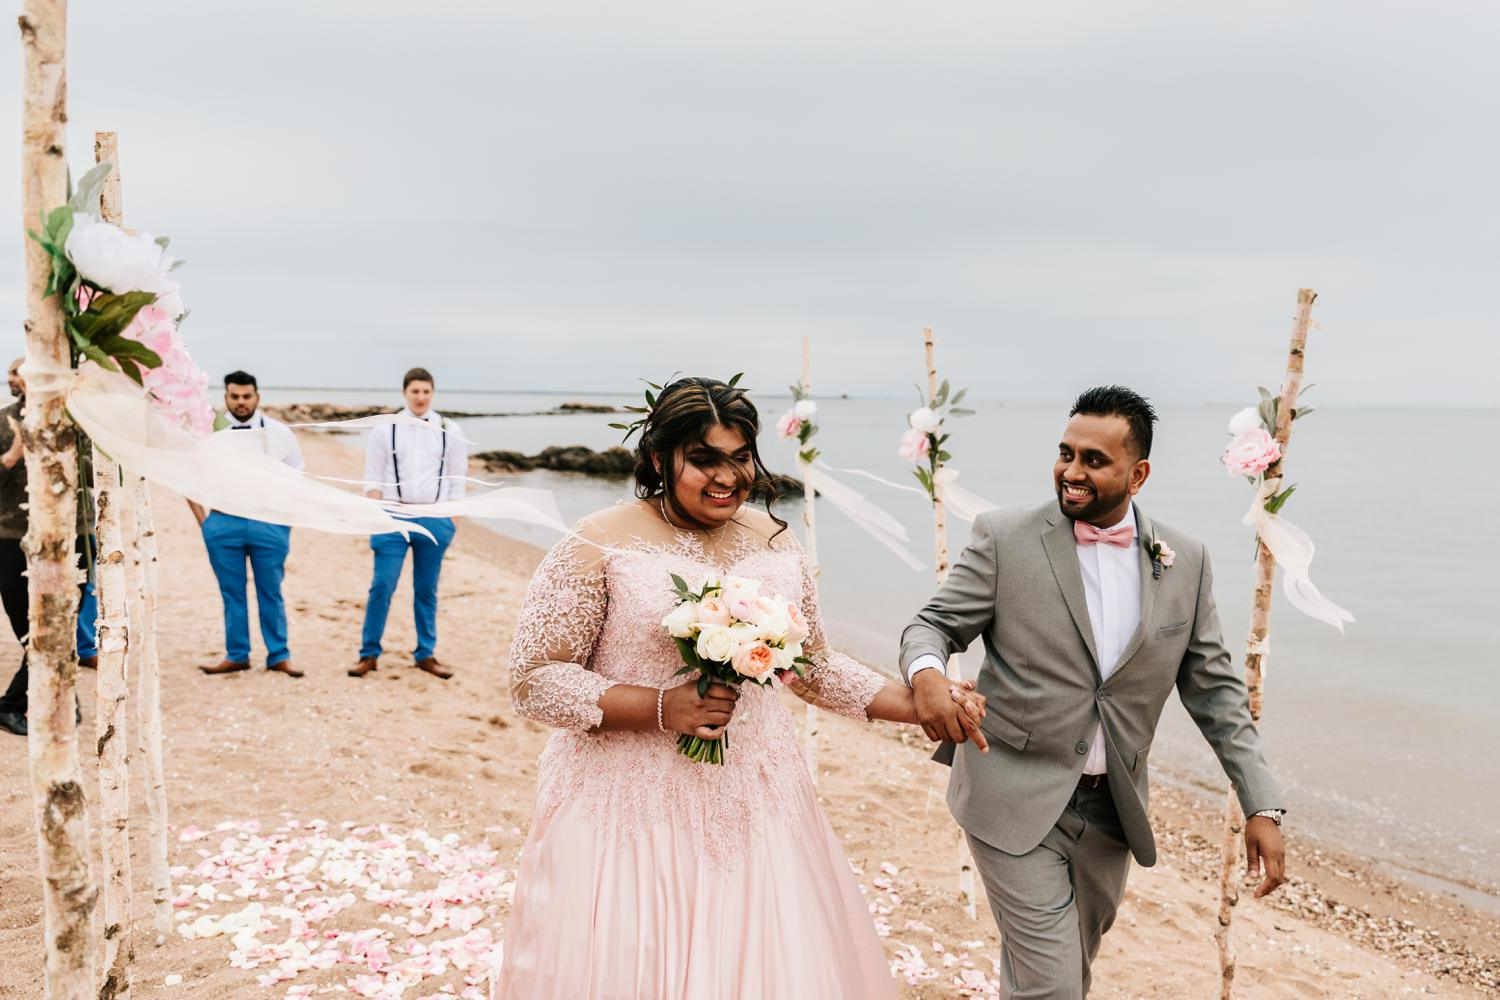 Bride and groom walking down aisle on beach wedding